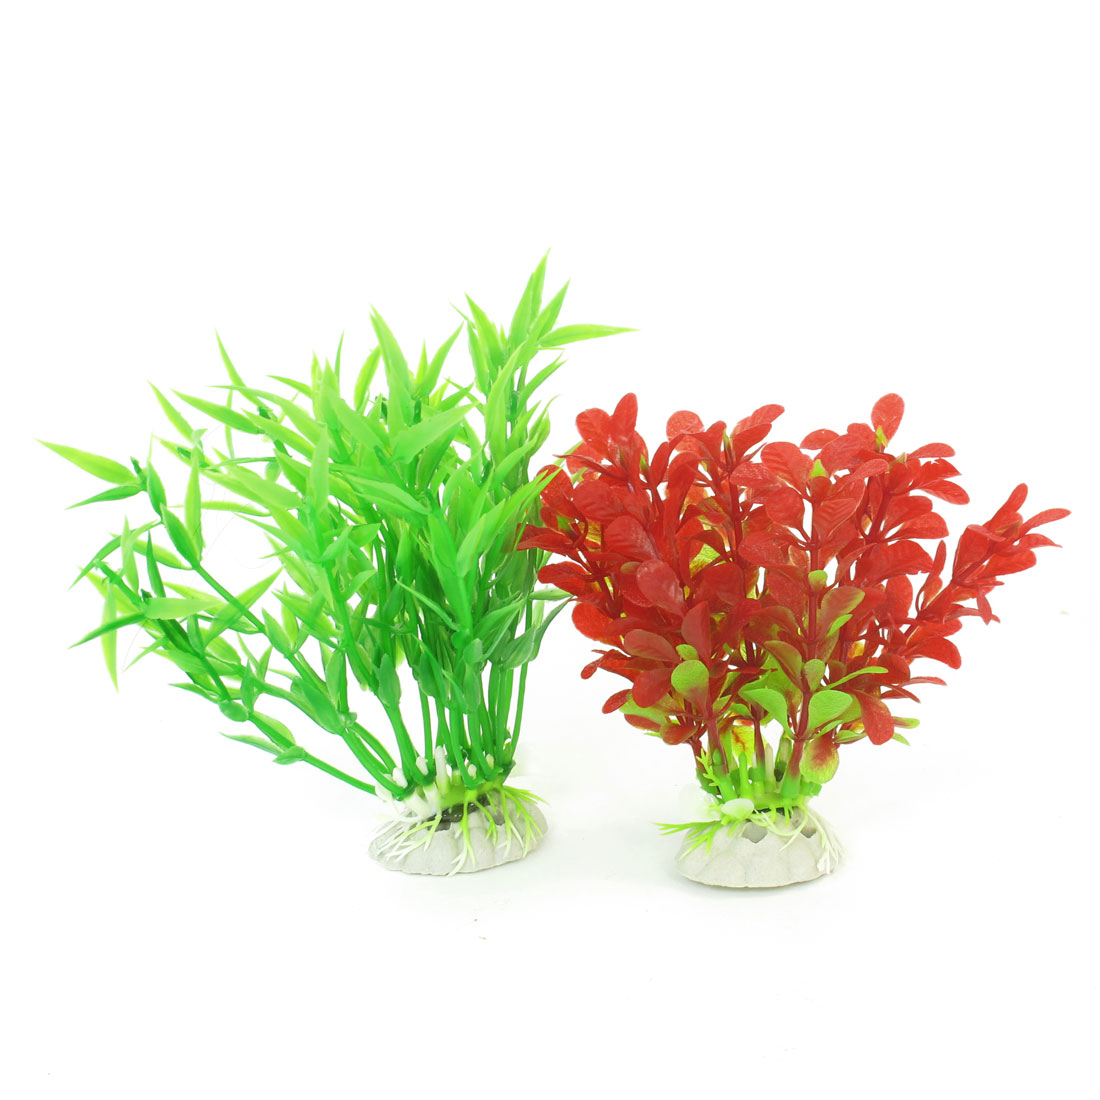 2 Pcs Red Green Emulational Fish Tank Aquarium Grasses Decoration